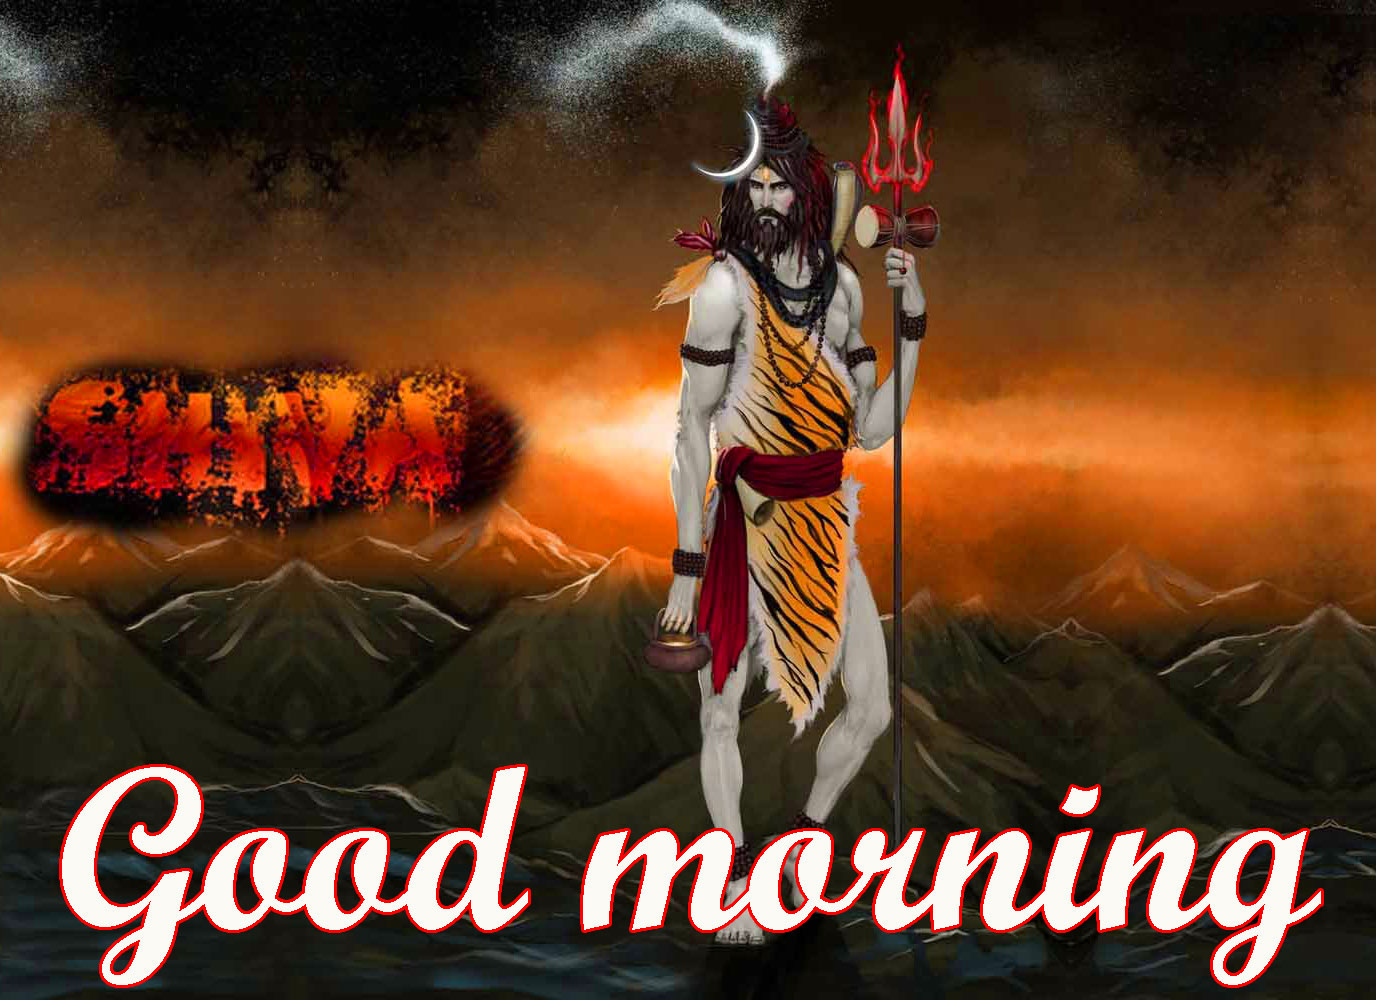 BEAUTIFUL 3D GOOD MORNING IMAGES WALLPAER PICS WITH LORD SHIVA